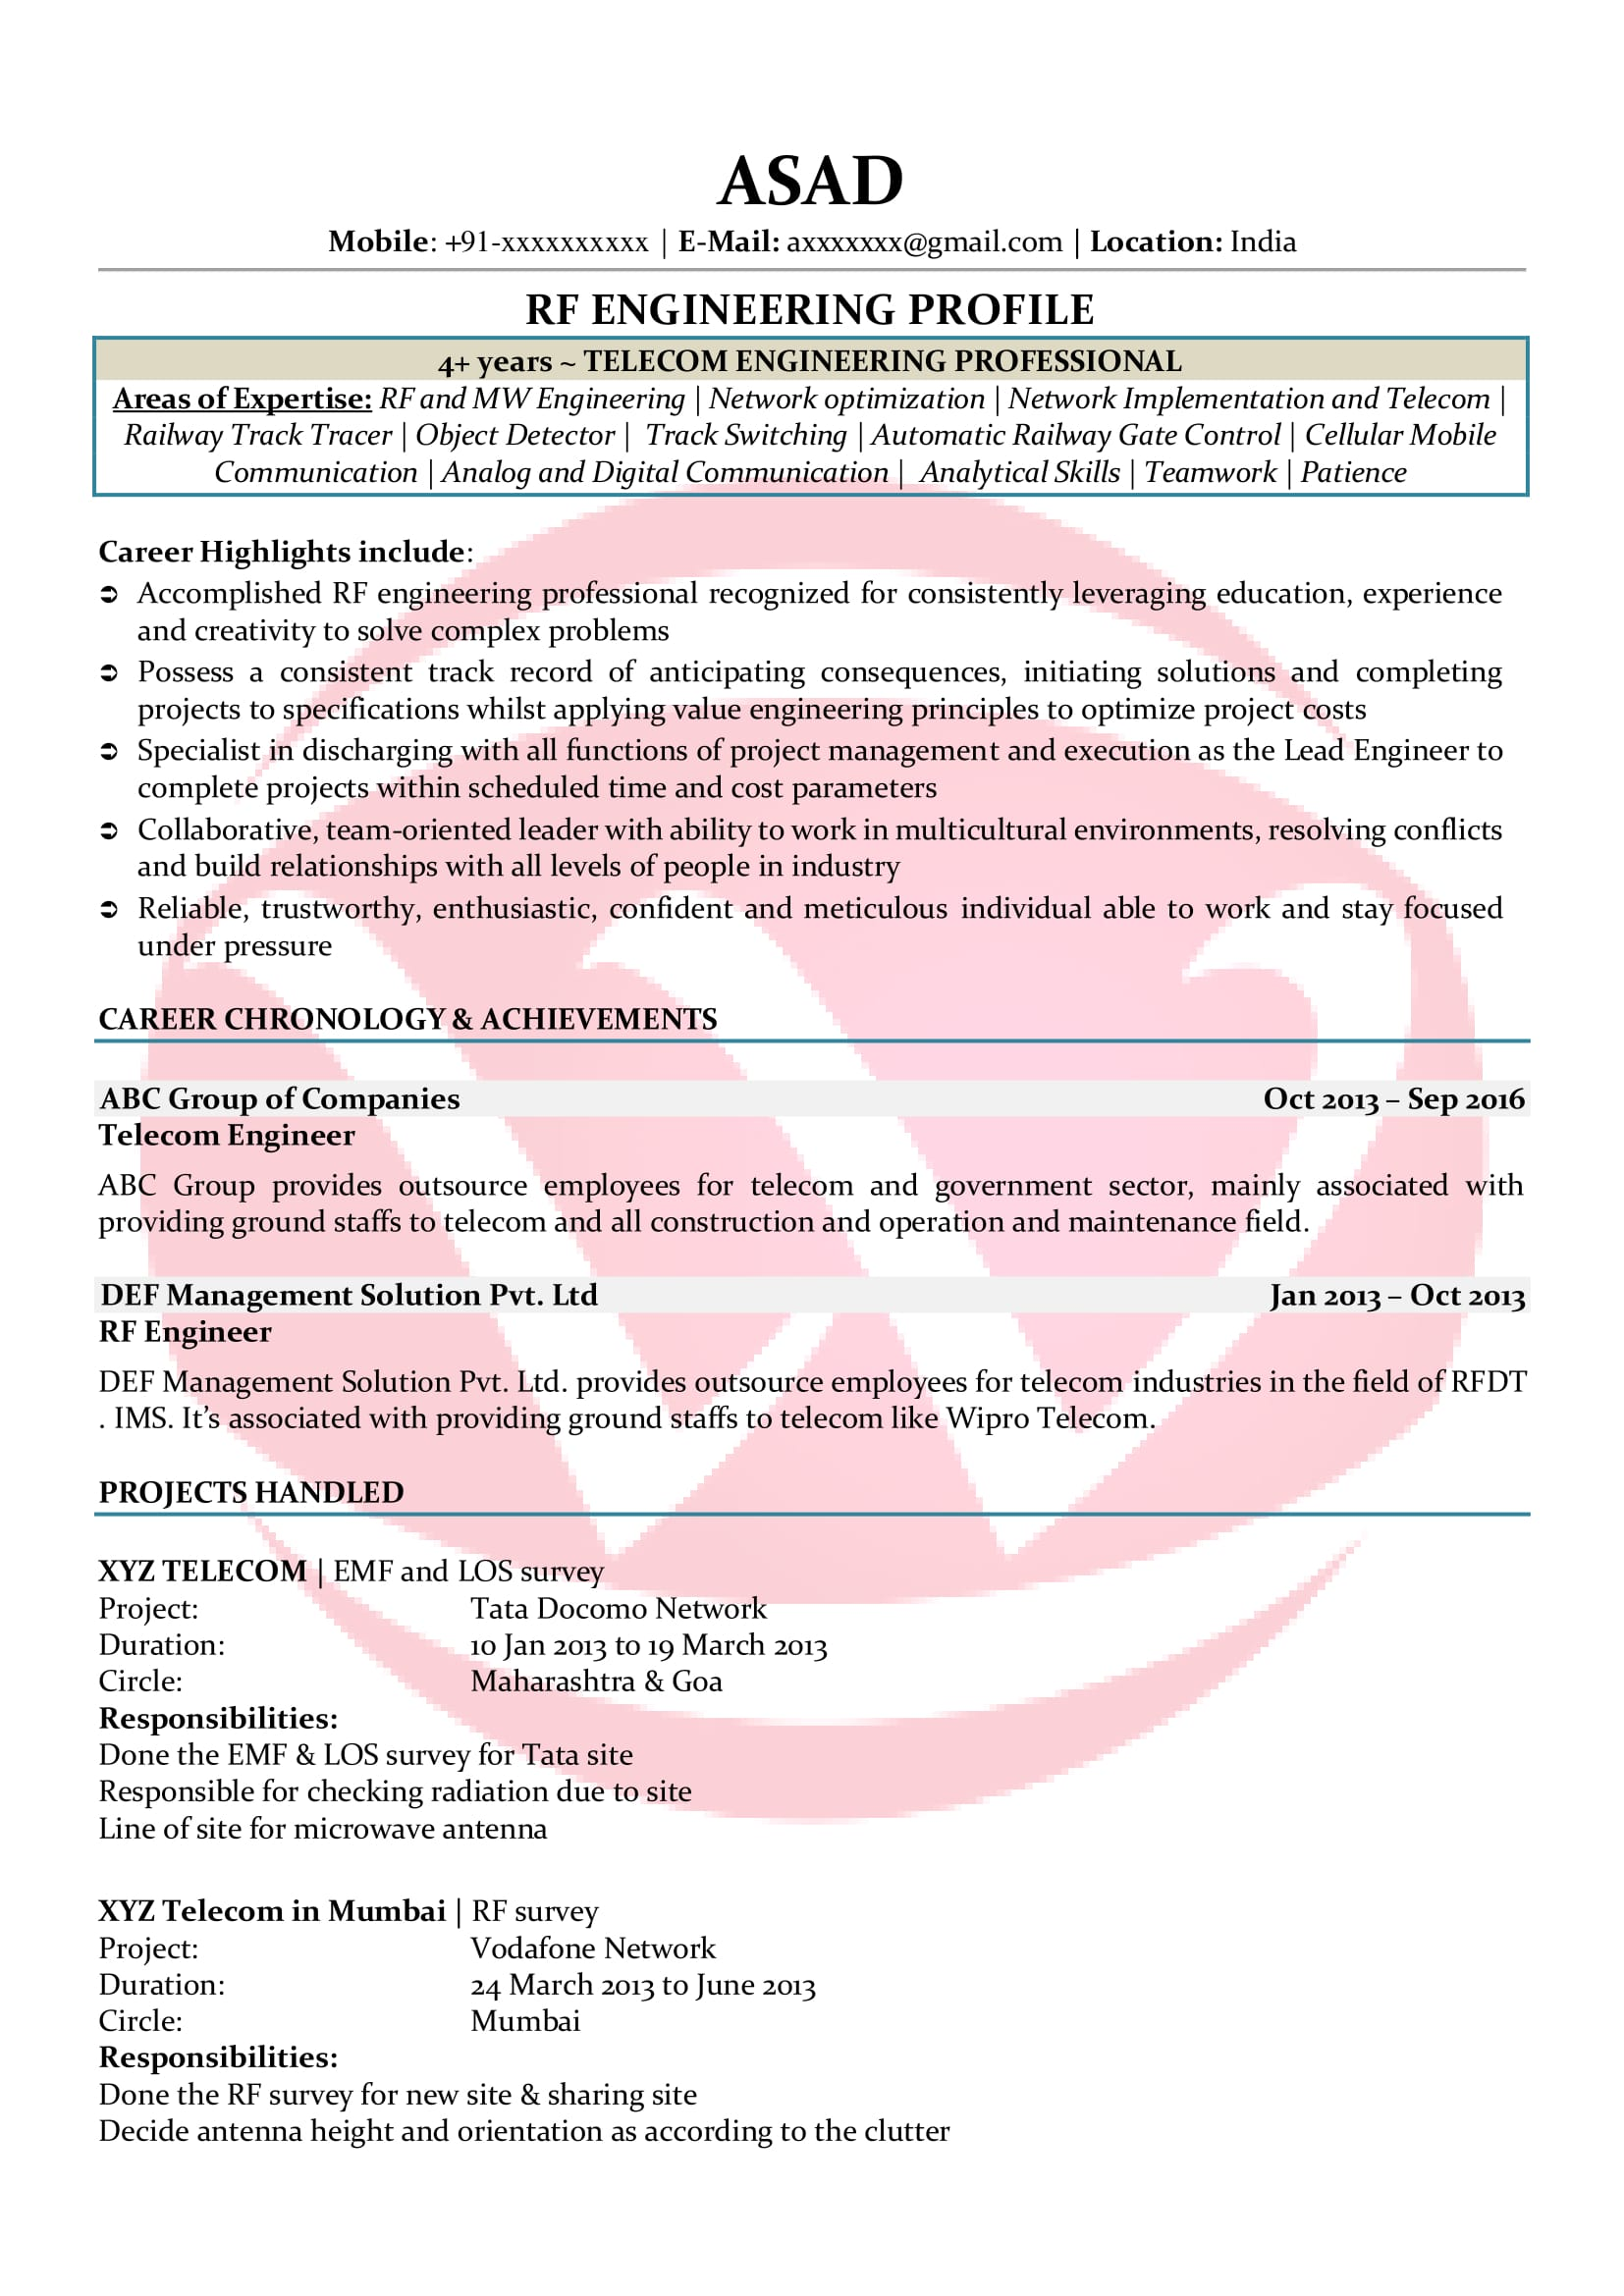 rf engineer sample resumes resume format templates for freshers student college Resume Rf Engineer Resume For Freshers